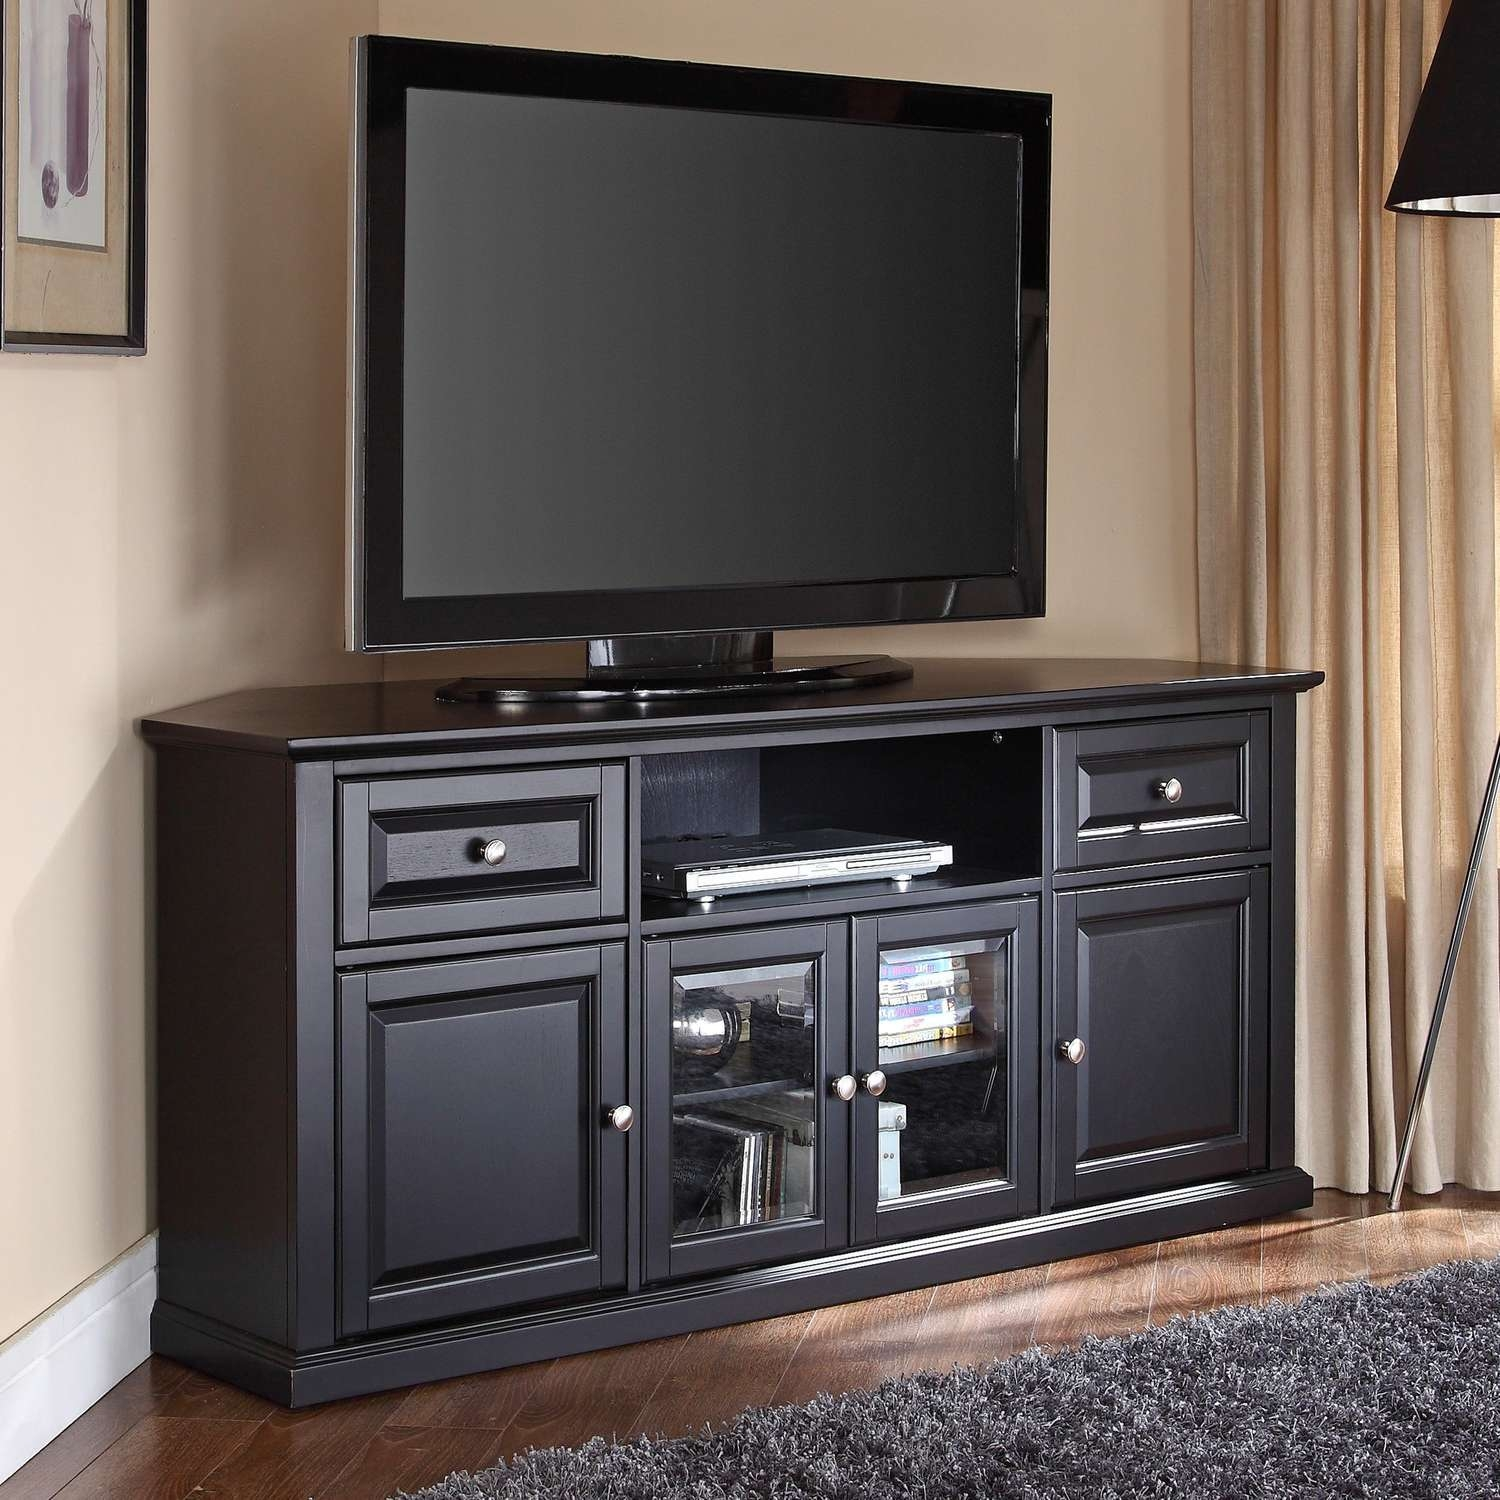 Talla Cabinets With Doors Glass Elegant Black Hardwood Cabinet Within Corner Tv Cabinets With Glass Doors (View 14 of 20)